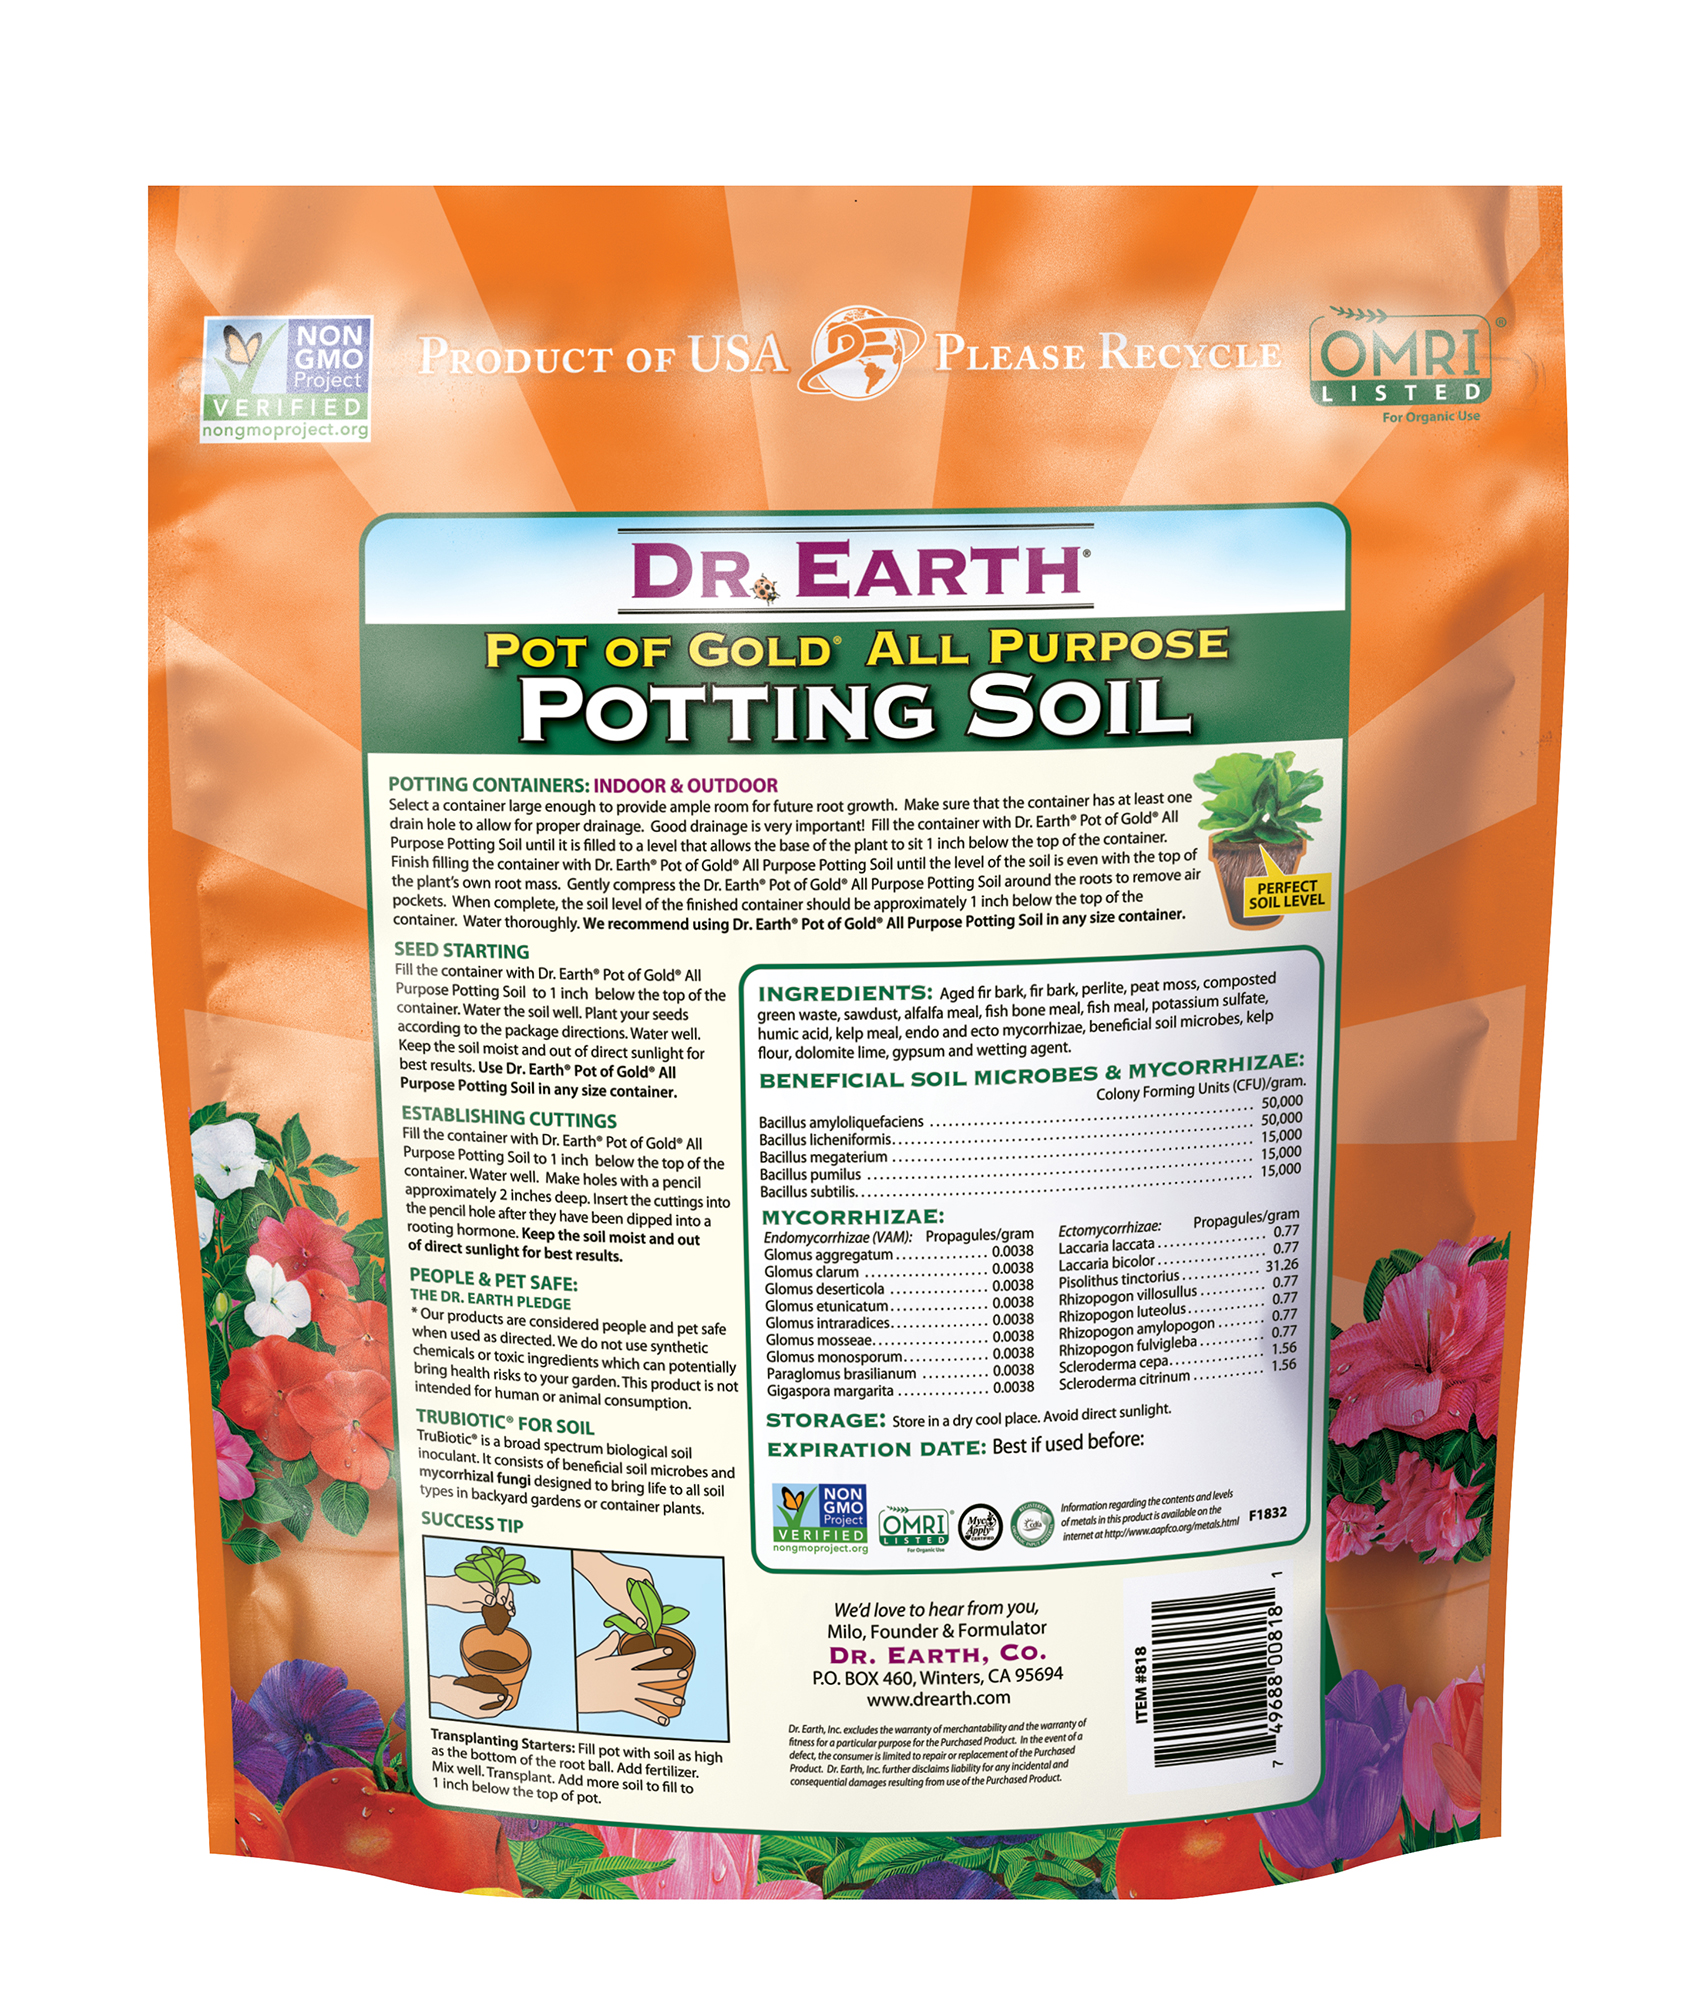 Life All Purpose Potting Soil Back Information